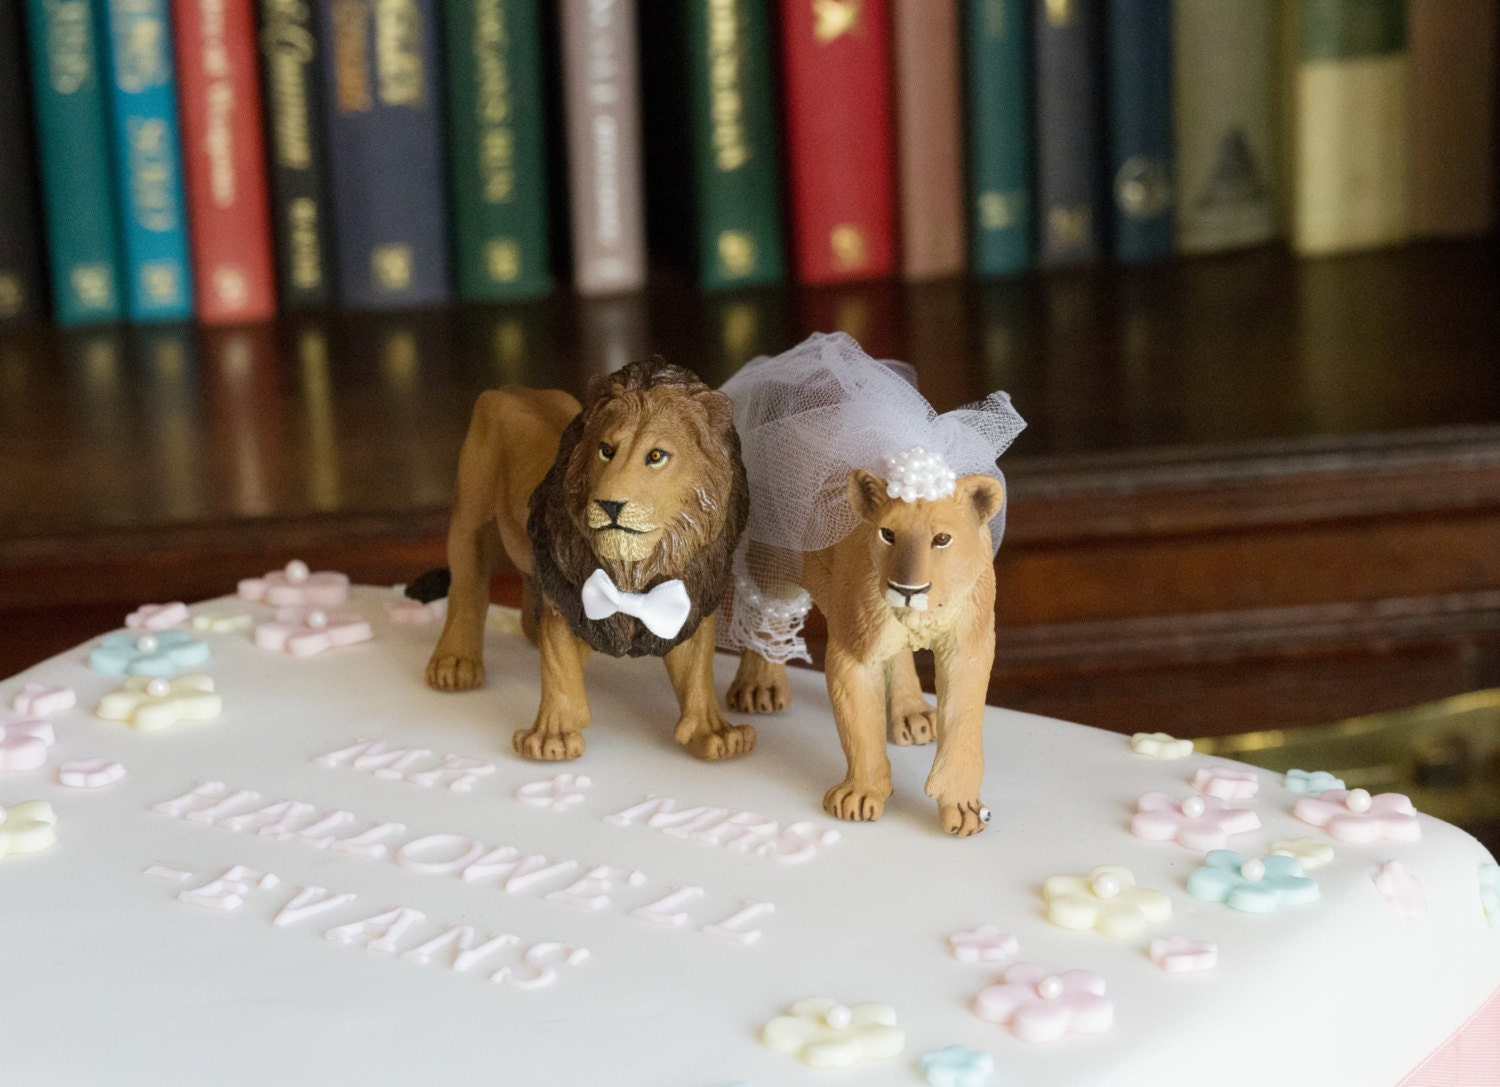 Lion lioness wedding cake topper zoo themed animal bride groom